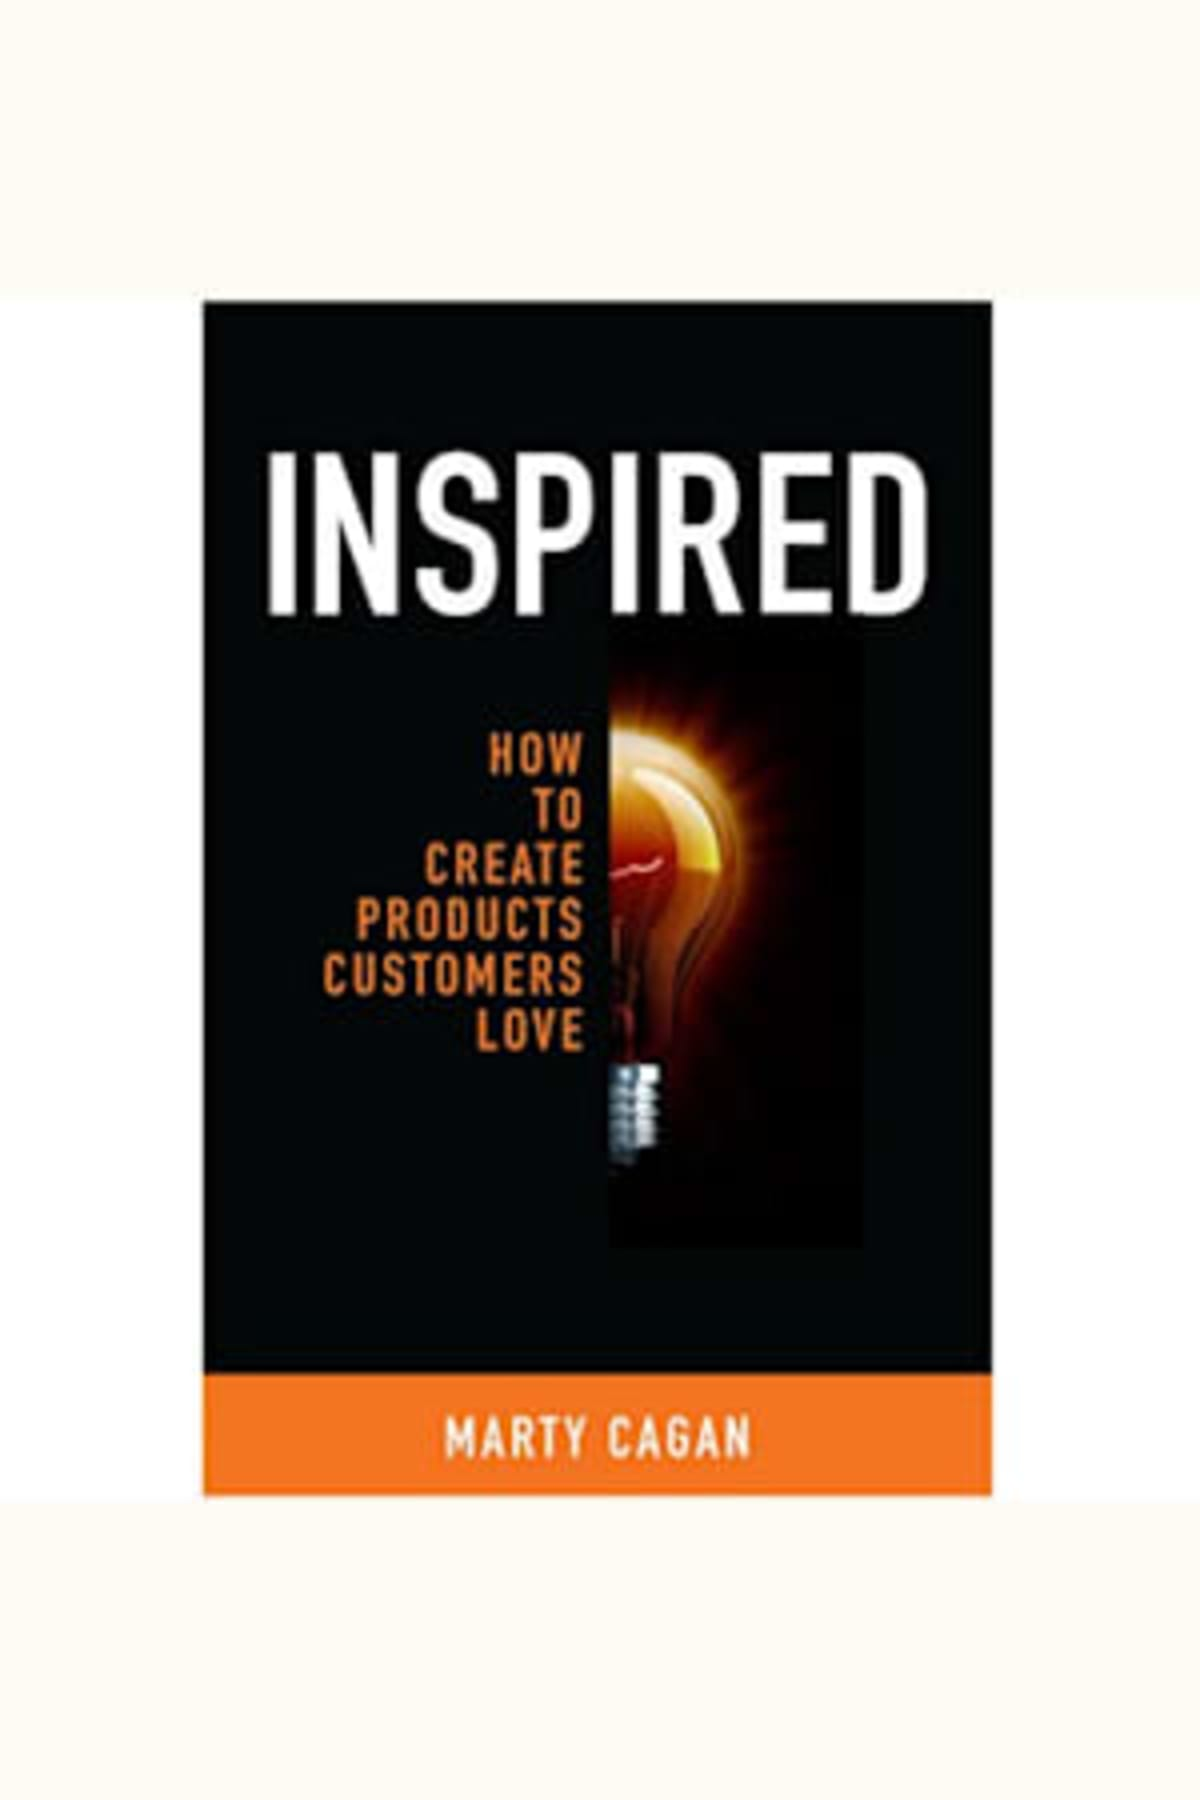 Book cover of Inspired - How to Create Products Customers Love by Marty Cagan